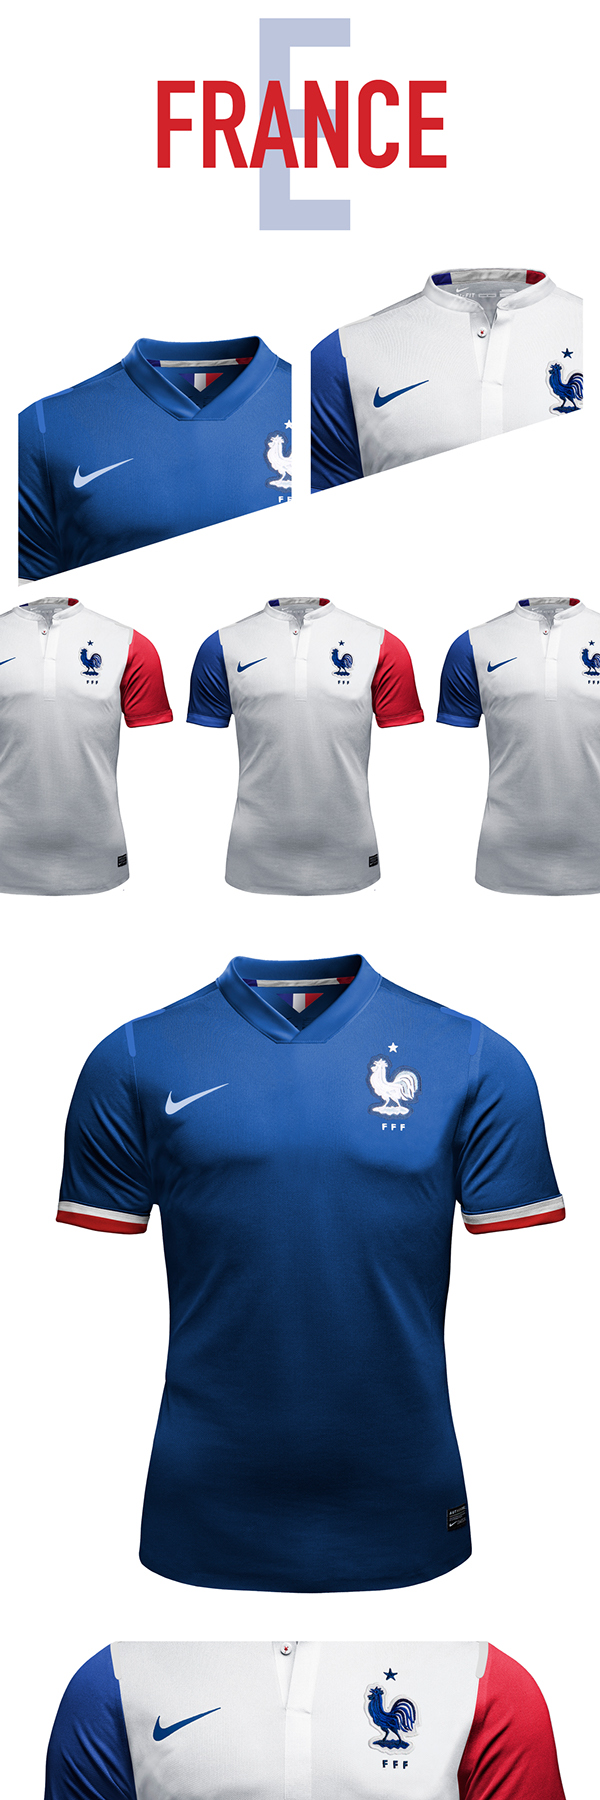 France World Cup Group F Concepts On Behance Sport Shirt Design Polo Shirt Design American Football Jersey